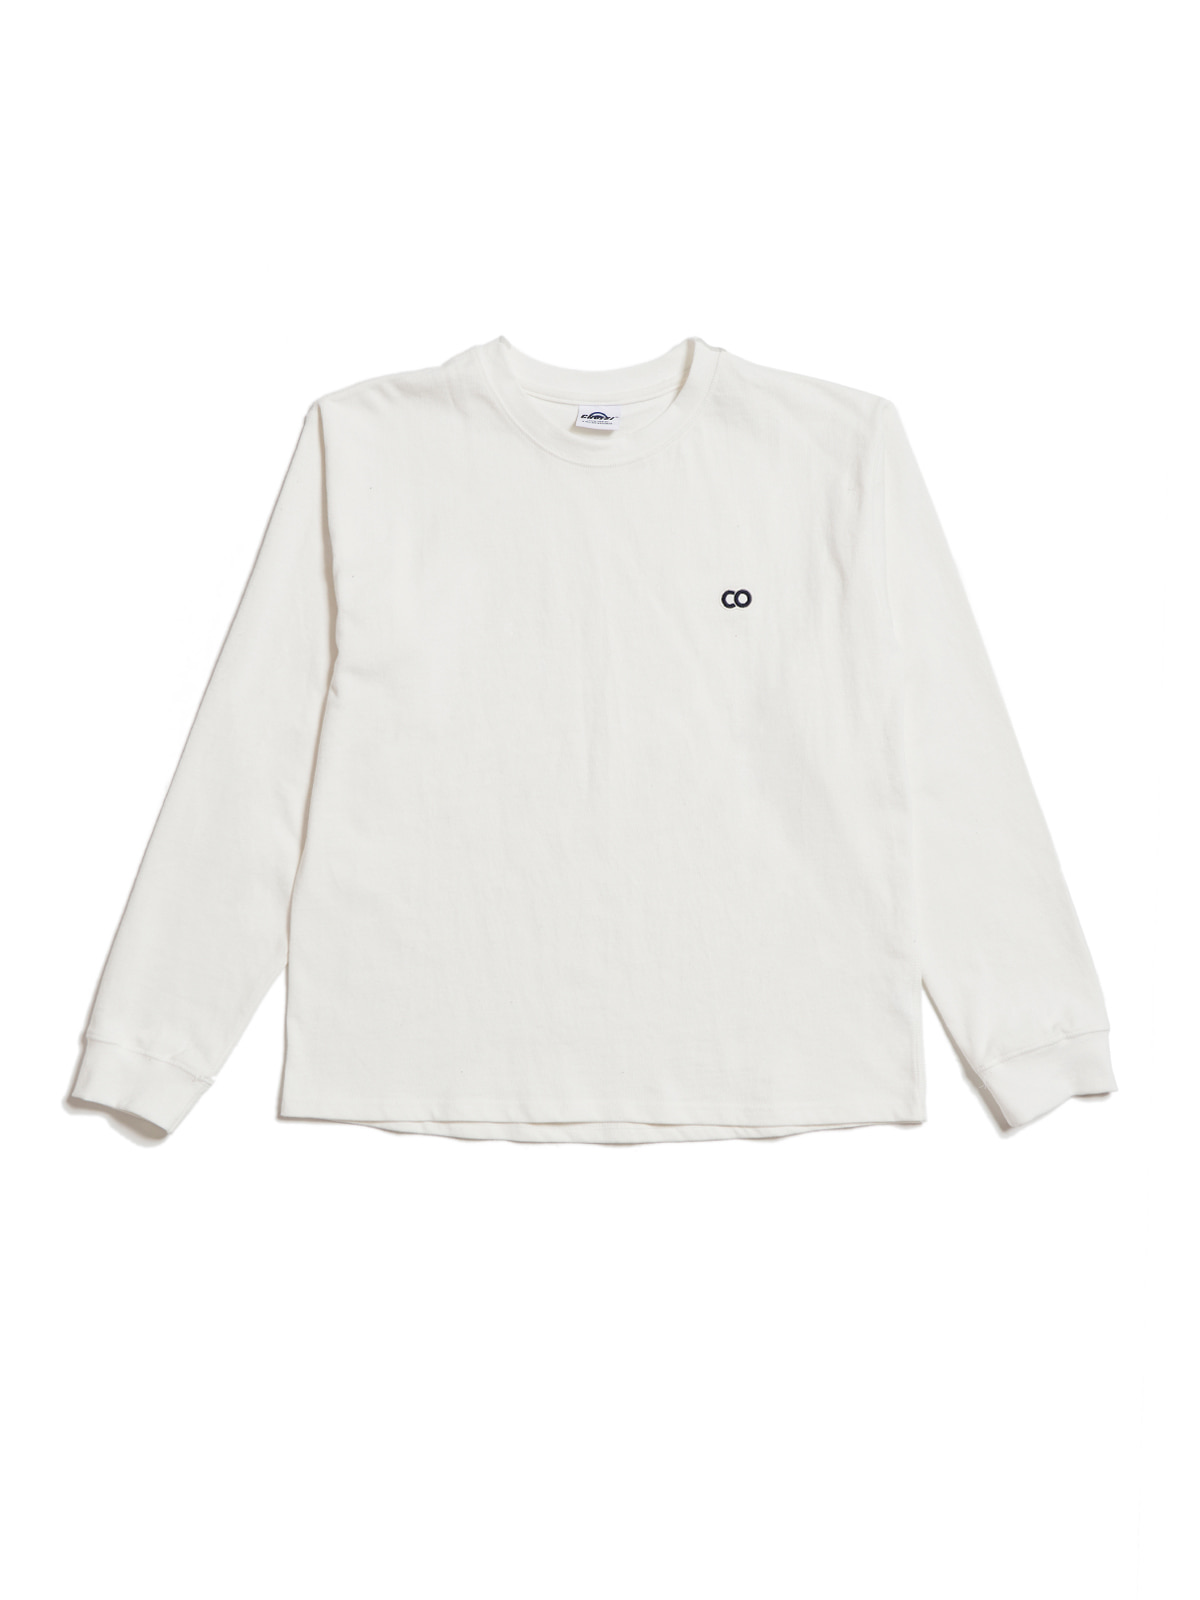 C.O Basic Long Sleeve, White